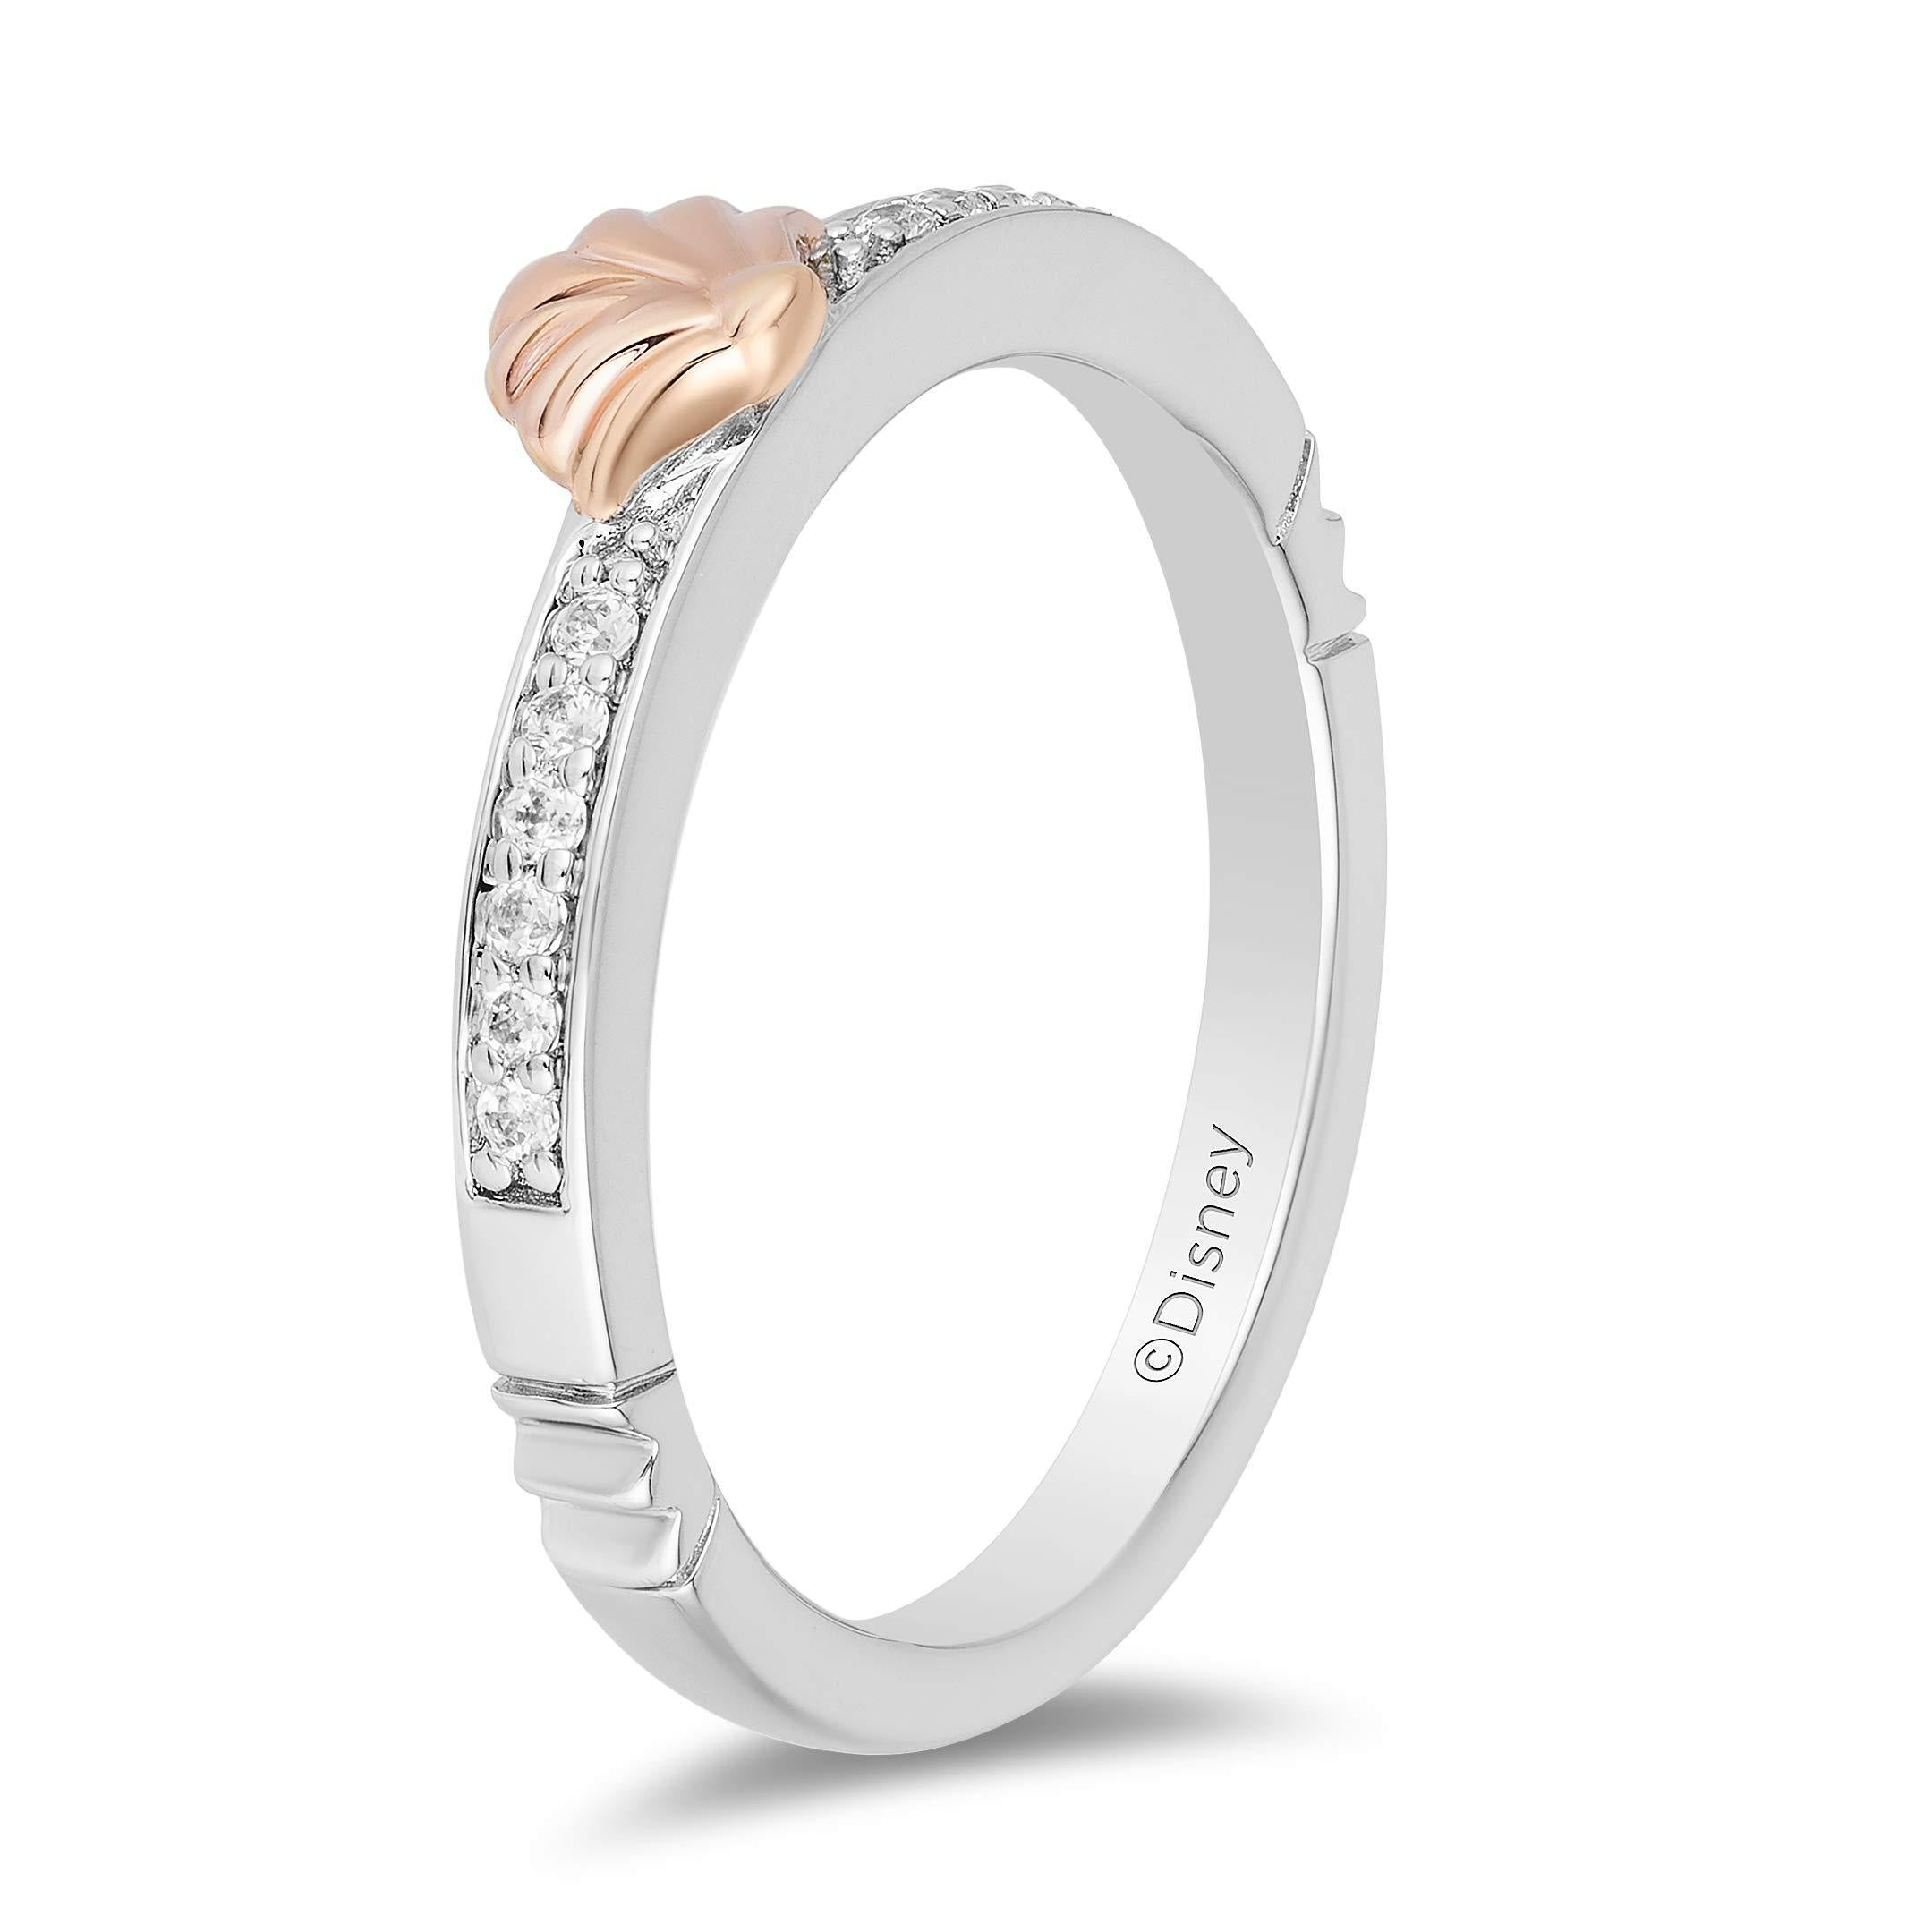 enchanted_disney-ariel_ring-9k_rose_gold_and_sterling_silver_0.10CTTW_3